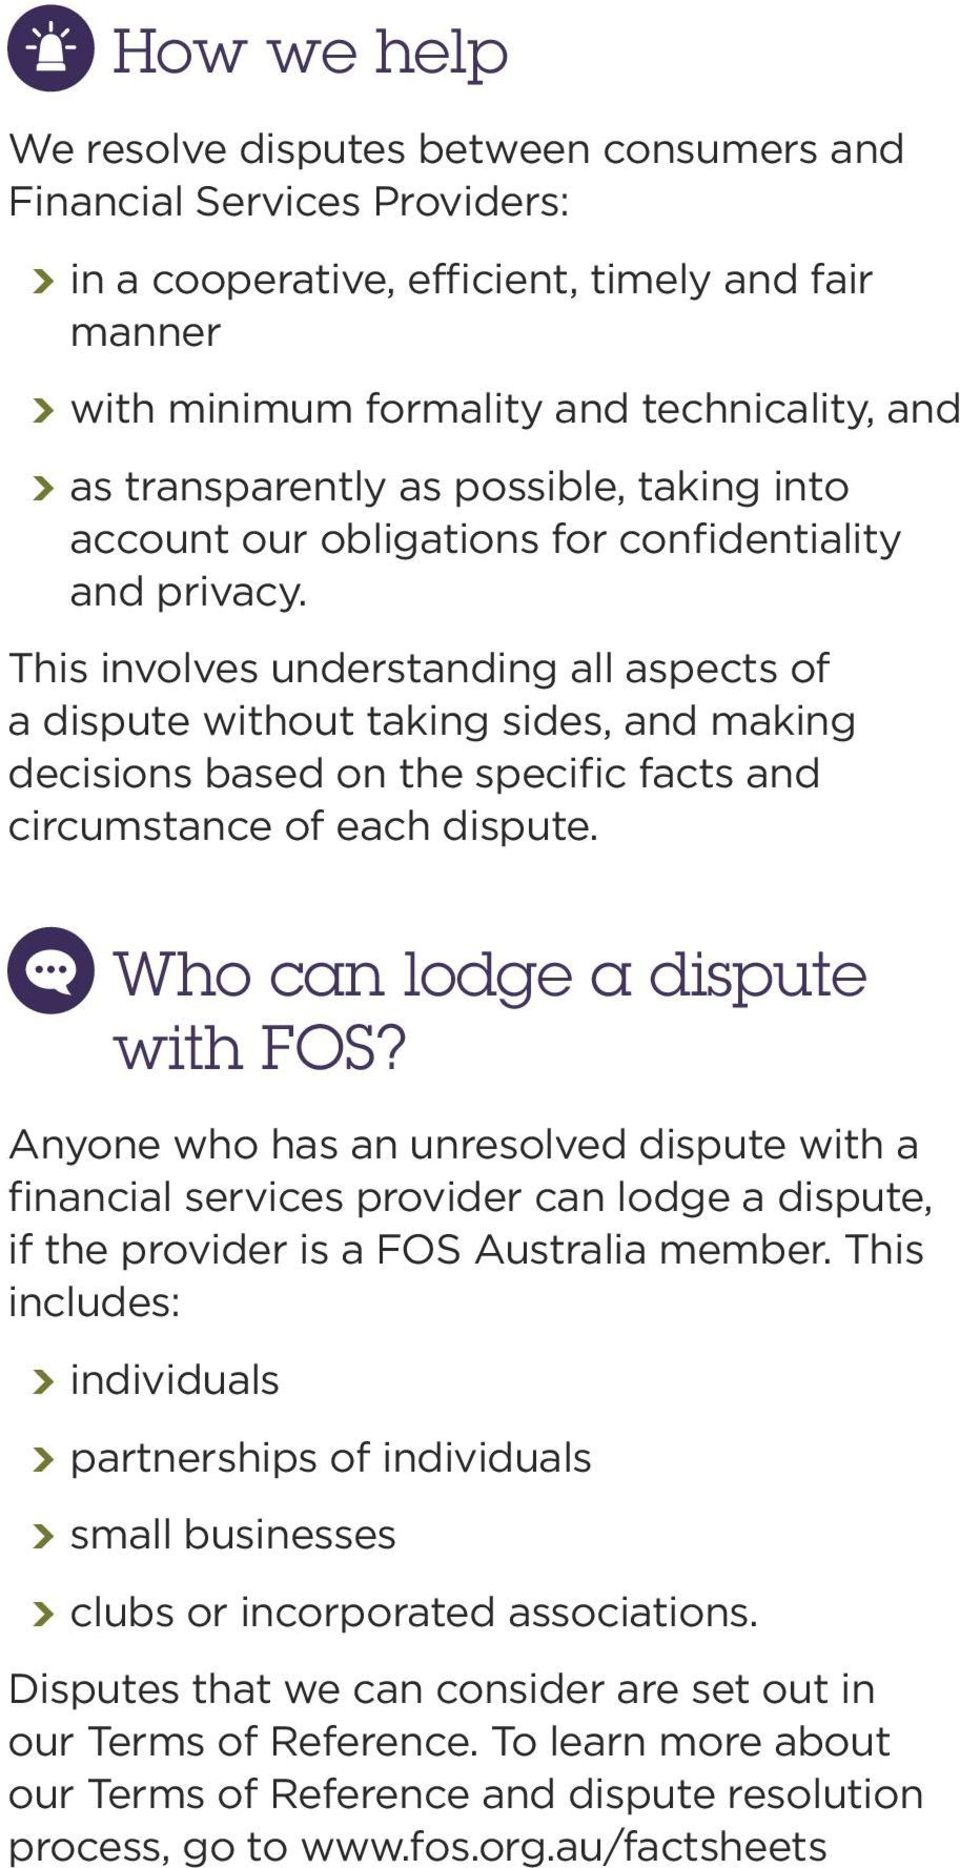 This involves understanding all aspects of a dispute without taking sides, and making decisions based on the specific facts and circumstance of each dispute. Who can lodge a dispute with FOS?